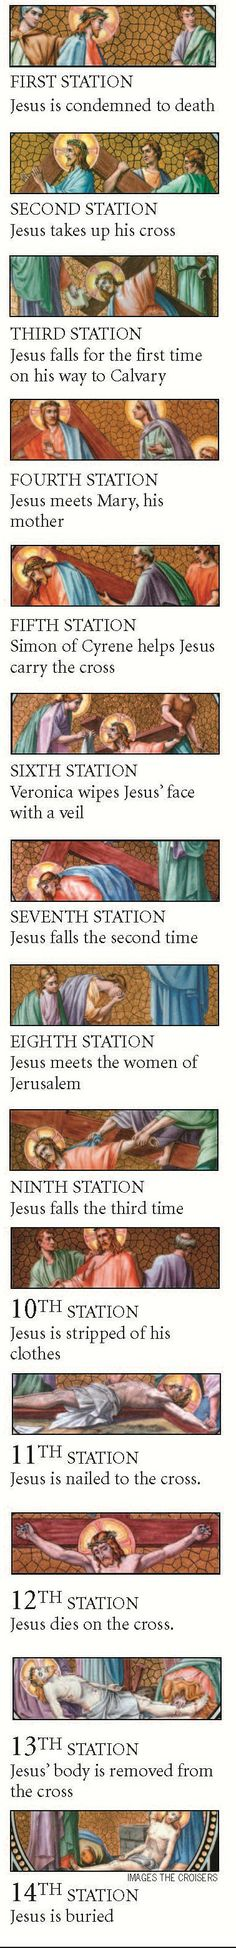 Stations of the Cross and other Lenten traditions http://www.osv.com/Portals/0/images/pdf/LentenGuidePoster.pdf (link takes you to a downloadable PDF)